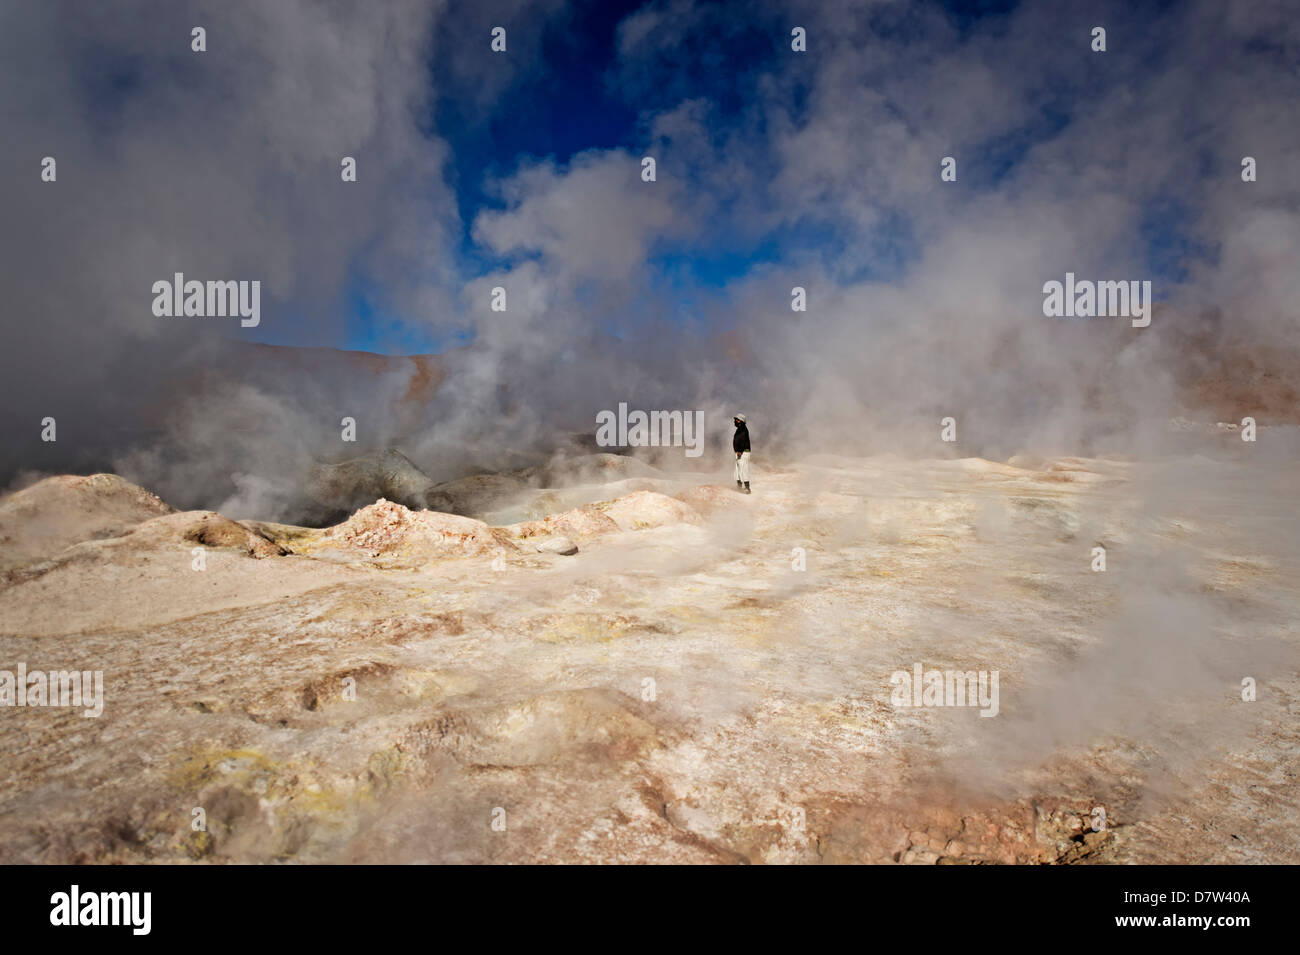 The Sol de Manana geysers, a geothermal field at a height of 5000 metres, Bolivia, South America - Stock Image